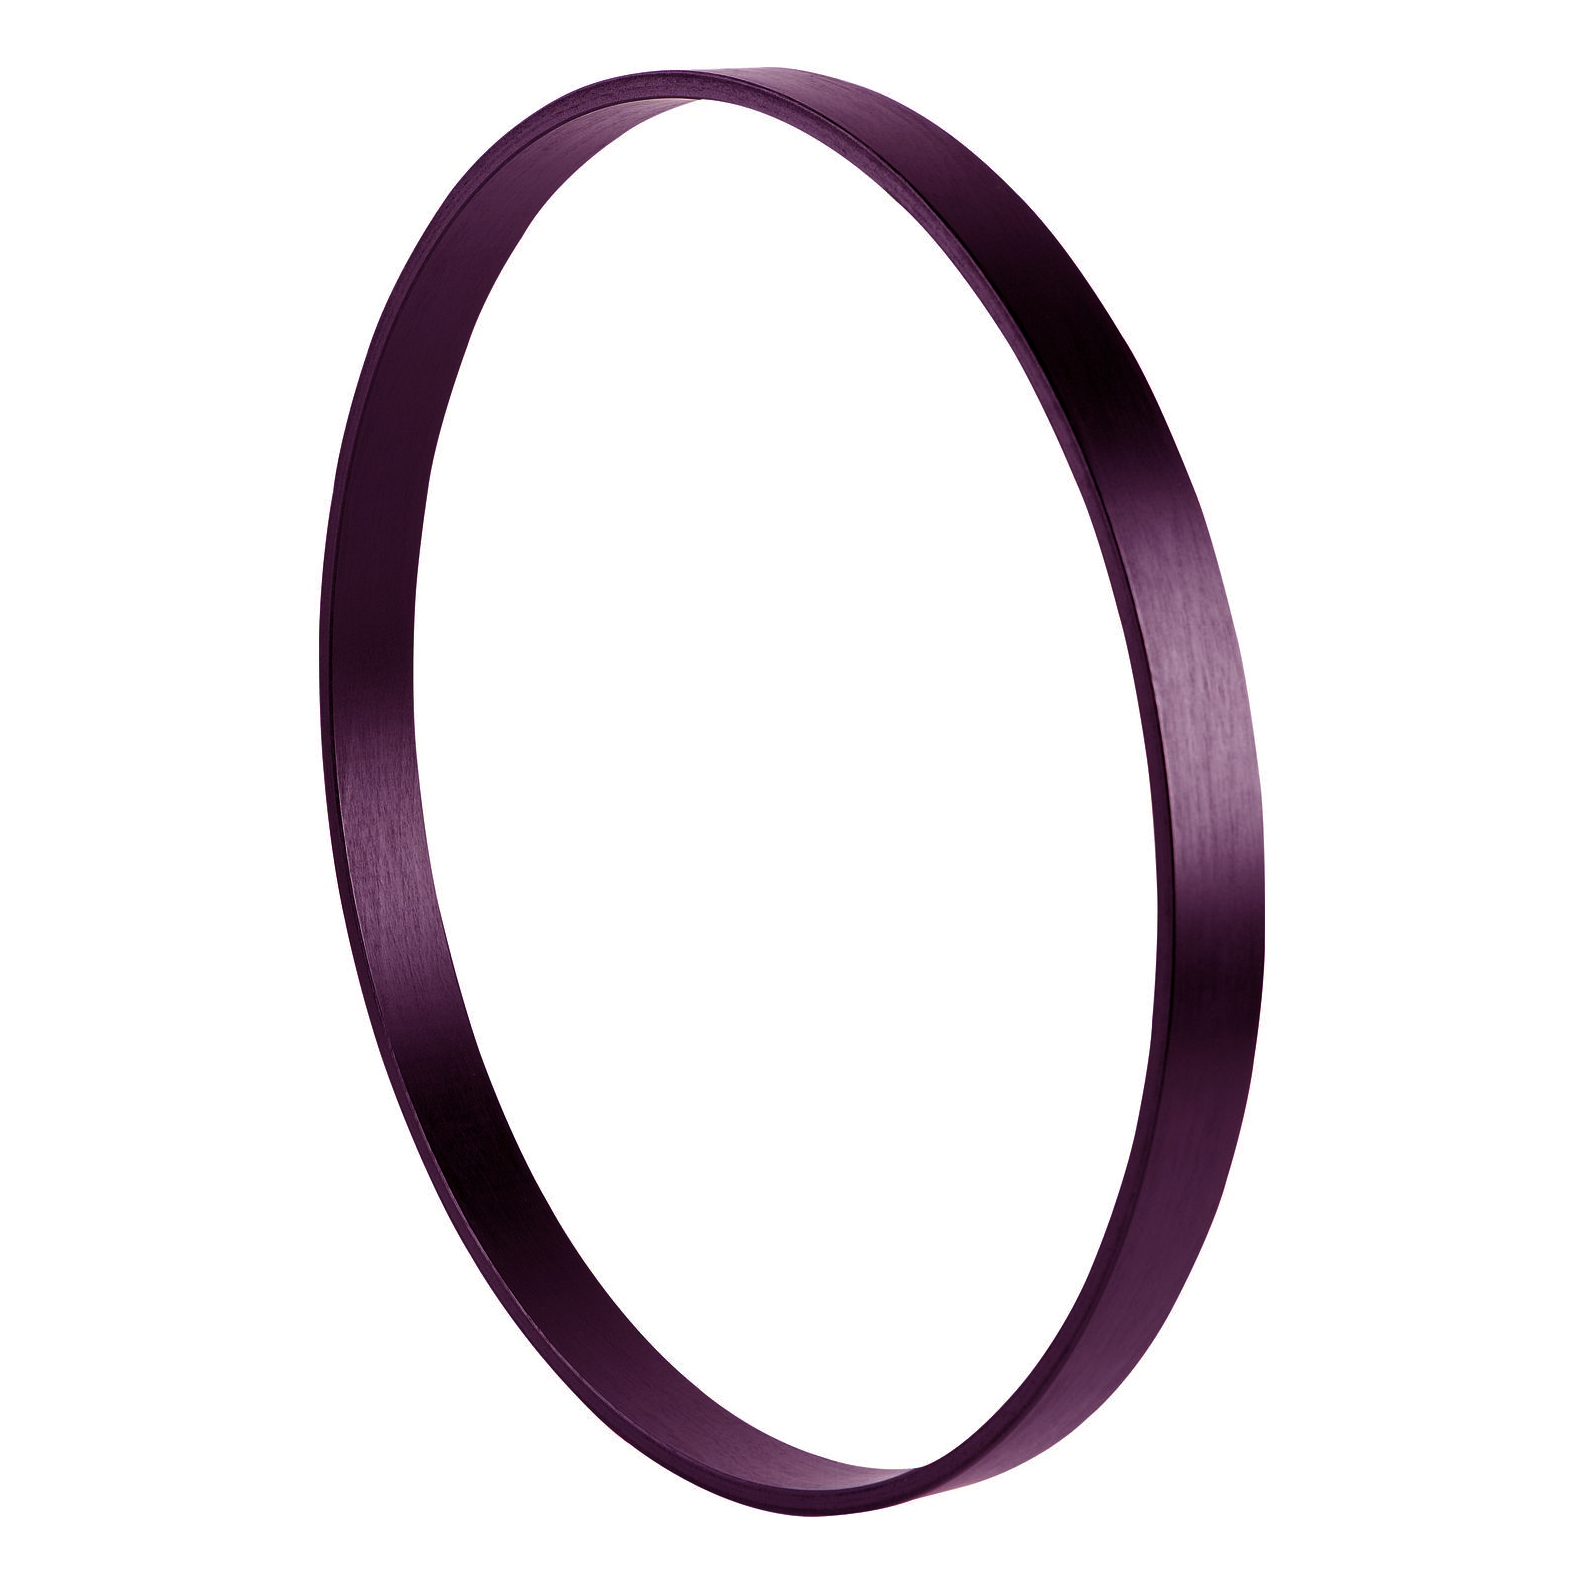 "Yamaha 20"" Absolute Maple Hoop - Plum Finish"